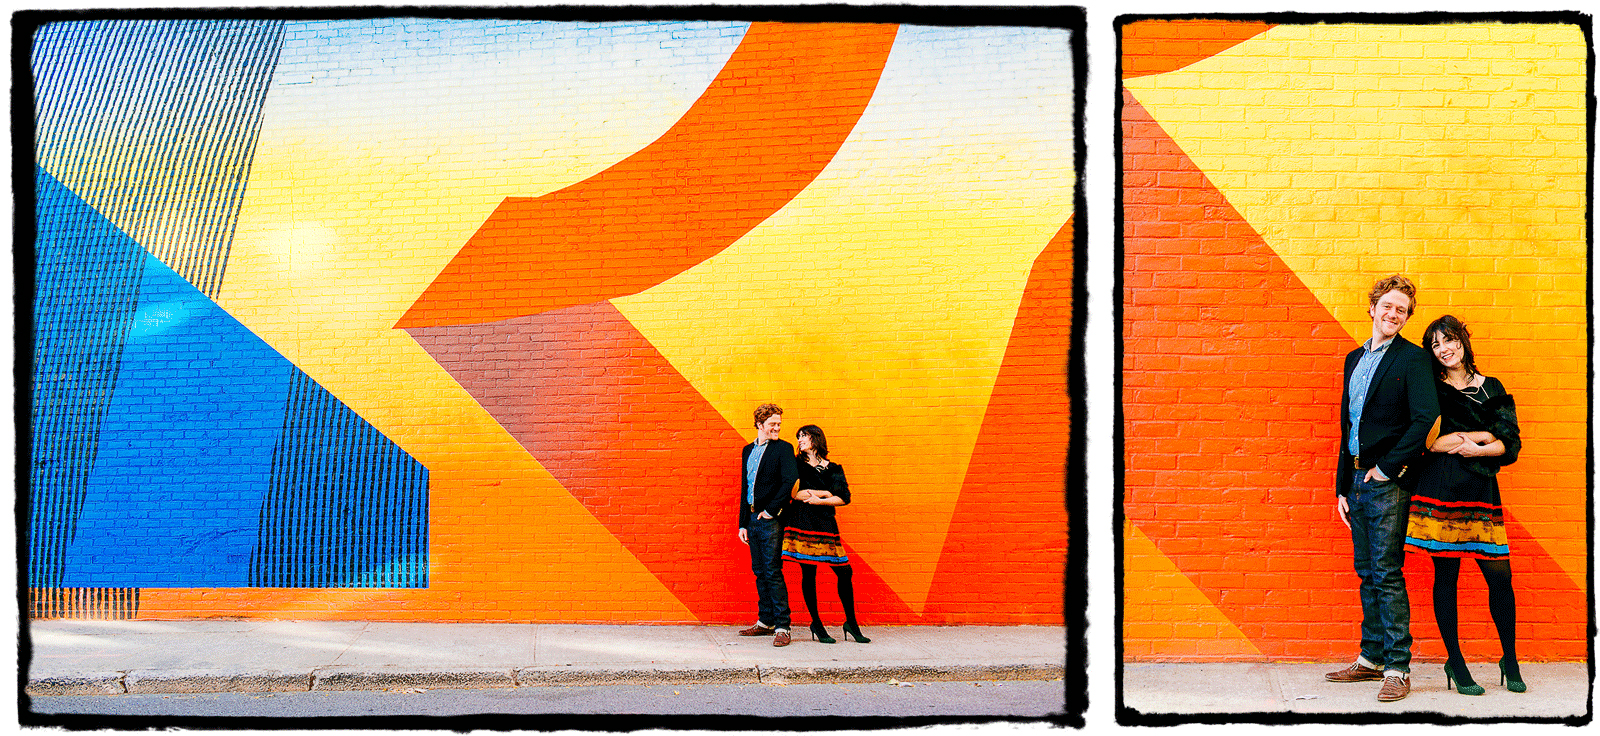 Engagement Portraits: Alli & Parker are shown here with the glorious murals in DUMBO, Brooklyn.